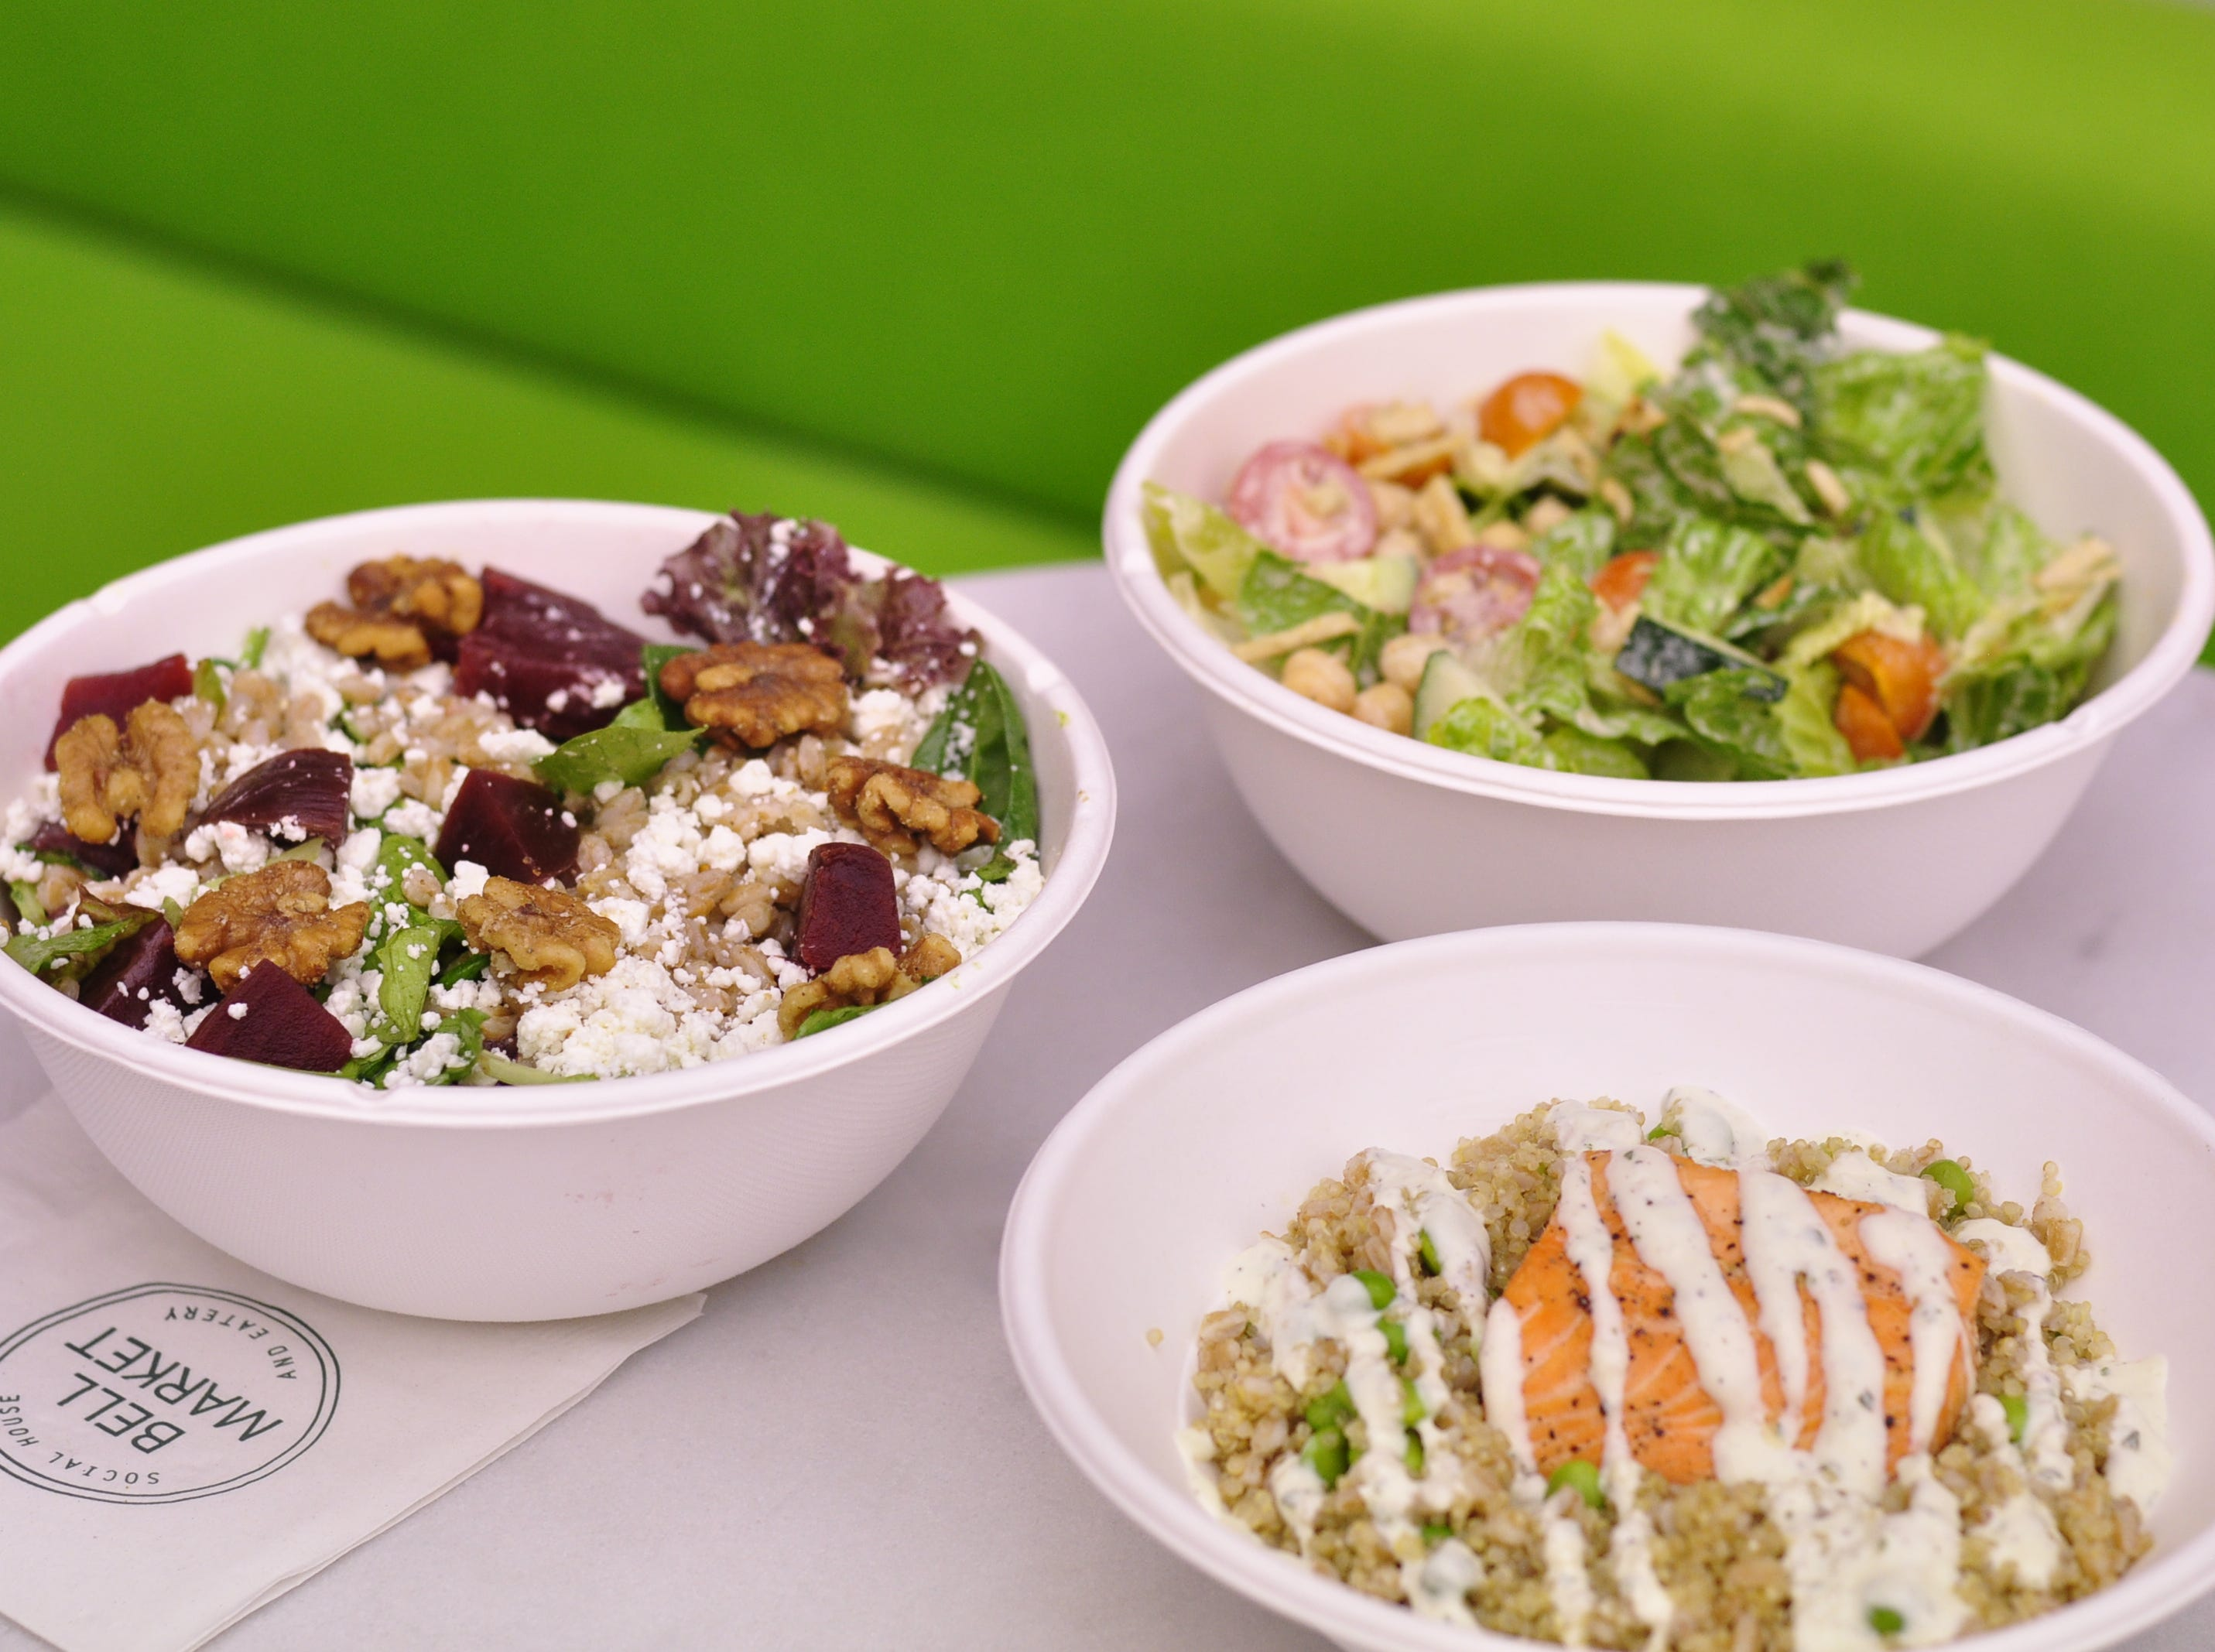 A selection of salads and grain bowls from Broadfork at Bell Market in Holmdel.